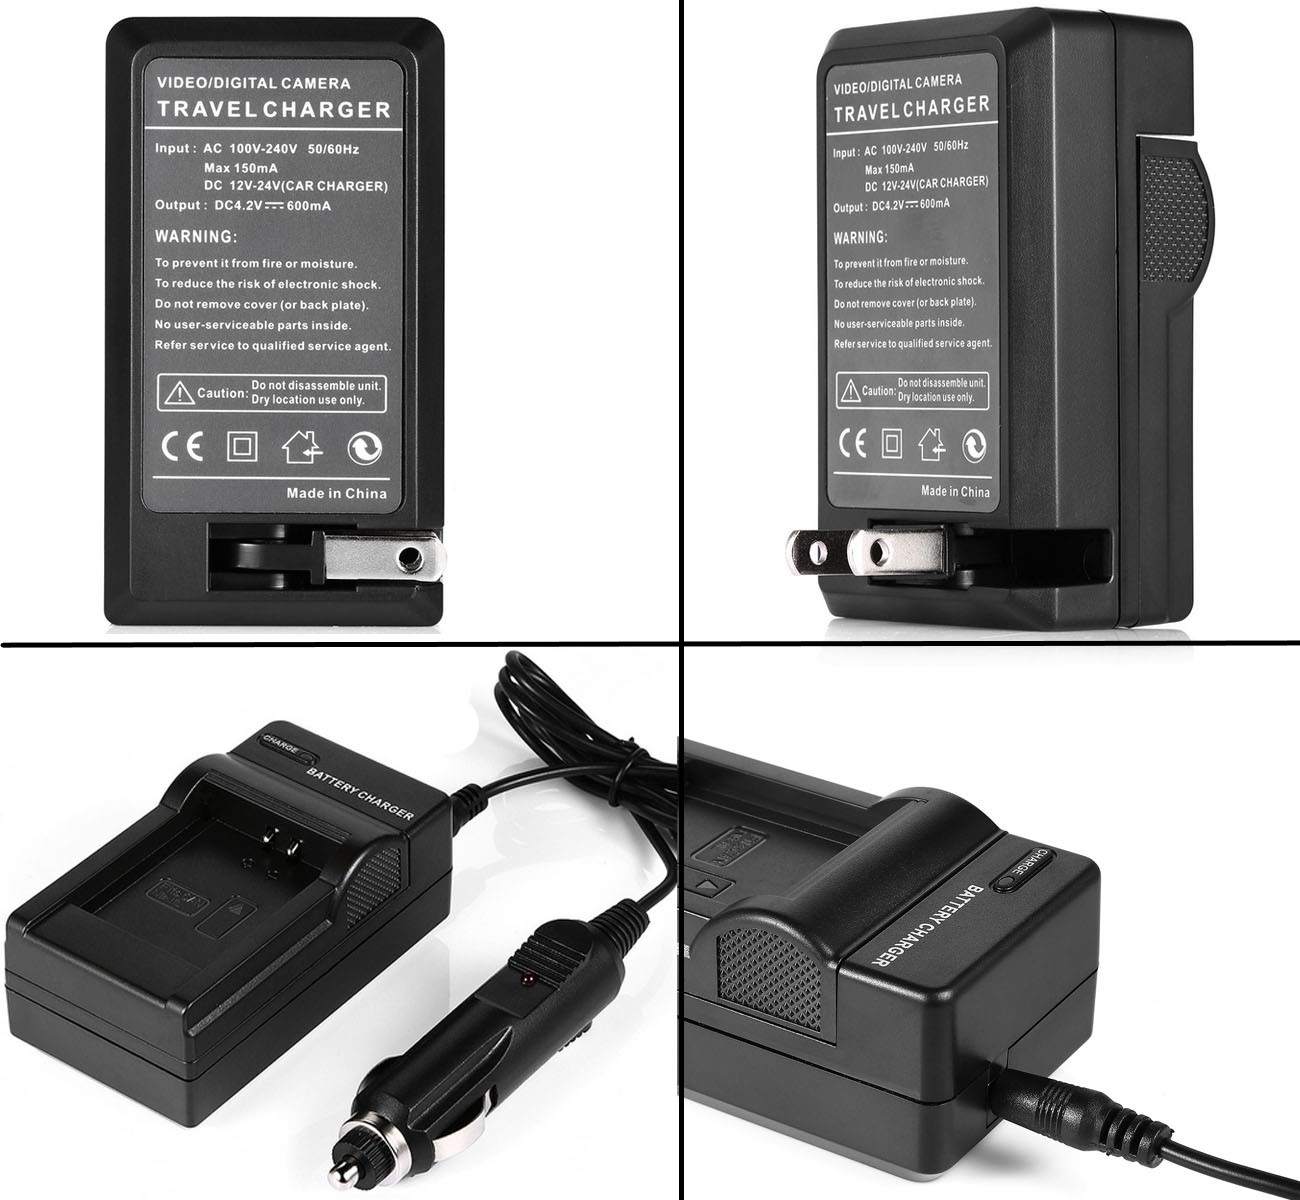 GZ-MG77AC GZ-MG77AH Digital Camcorder Battery Charger for JVC Everio GZ-MG77AA